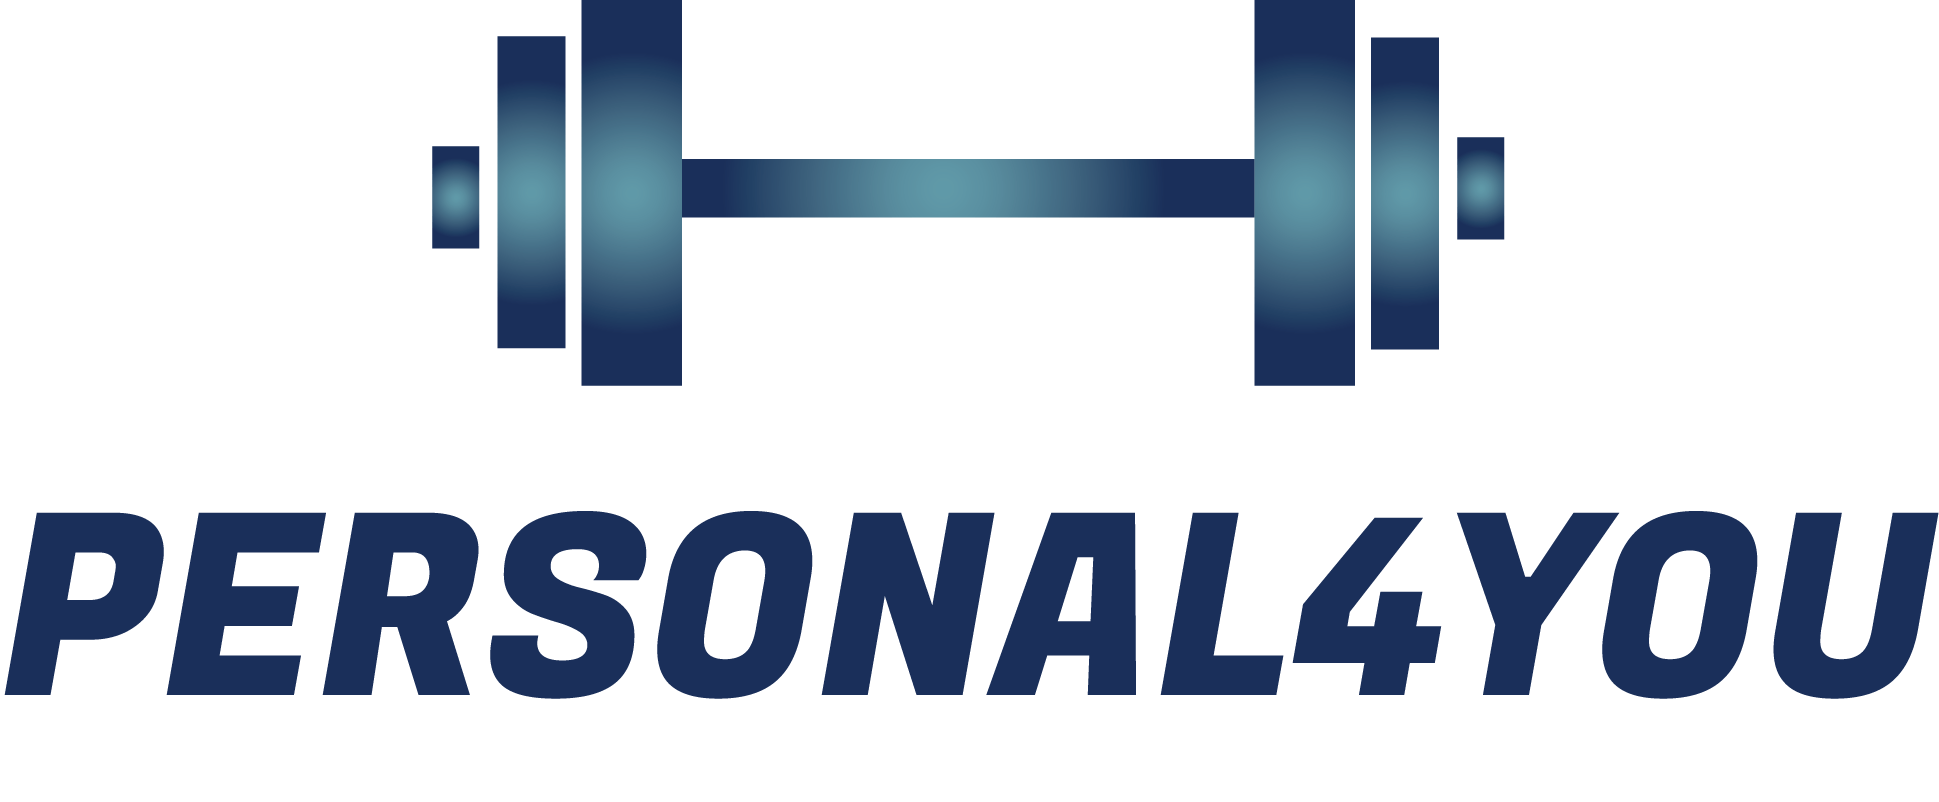 personal4you logo 2